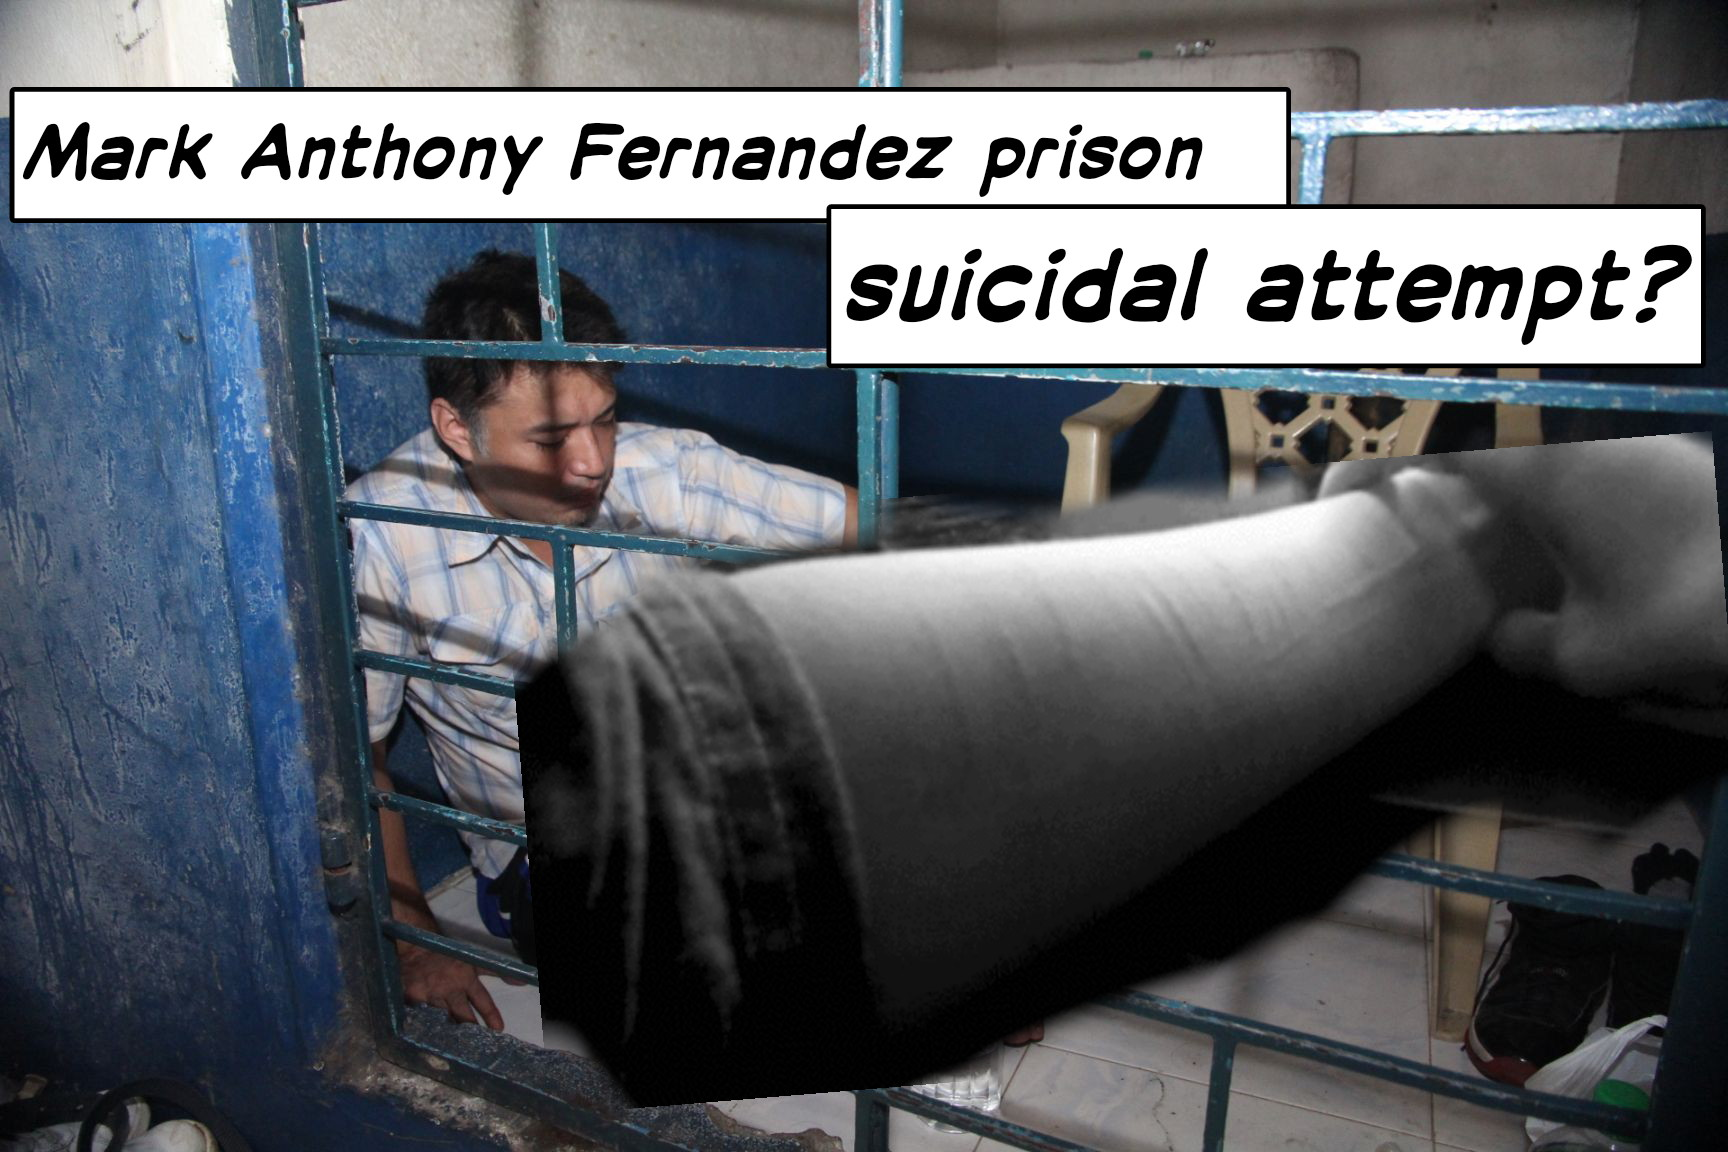 Image of Mark Anthony Fernandez Suicide Attempt in Jail?